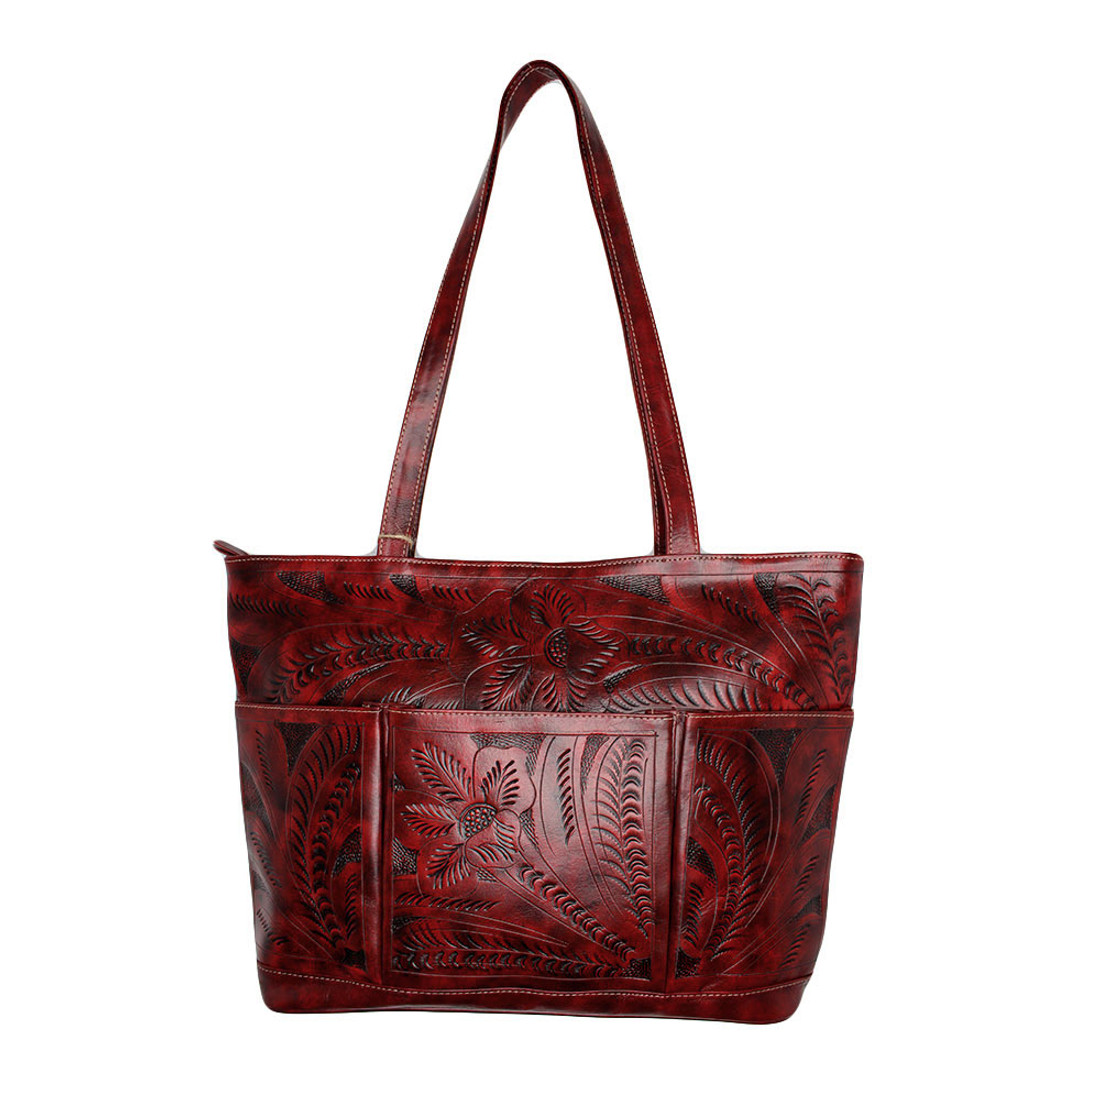 Oxblood red large tote bag from Leaders in Leather.